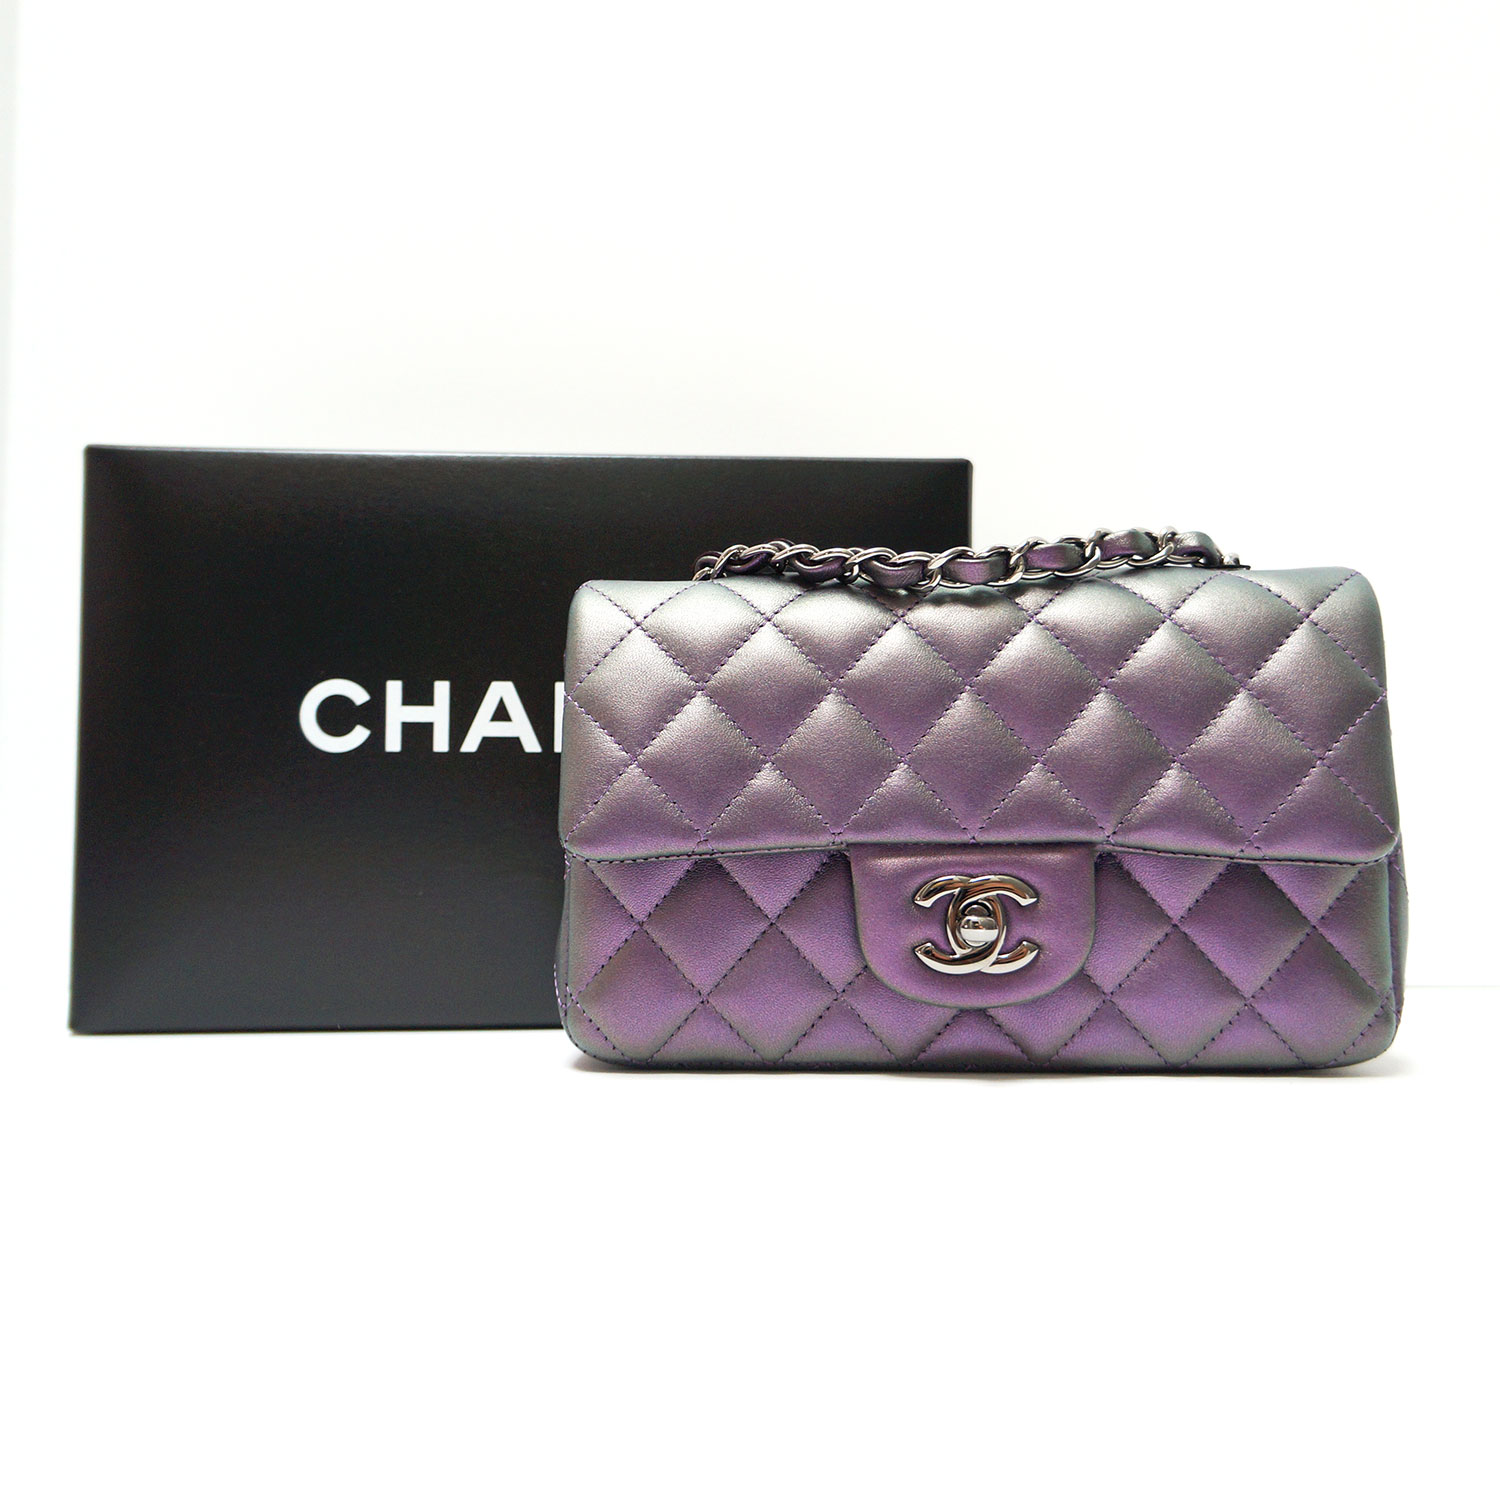 7b8e8f6813be Chanel Iridescent Purple Quilted Leather Classic Mini Flap Crossbody Bag